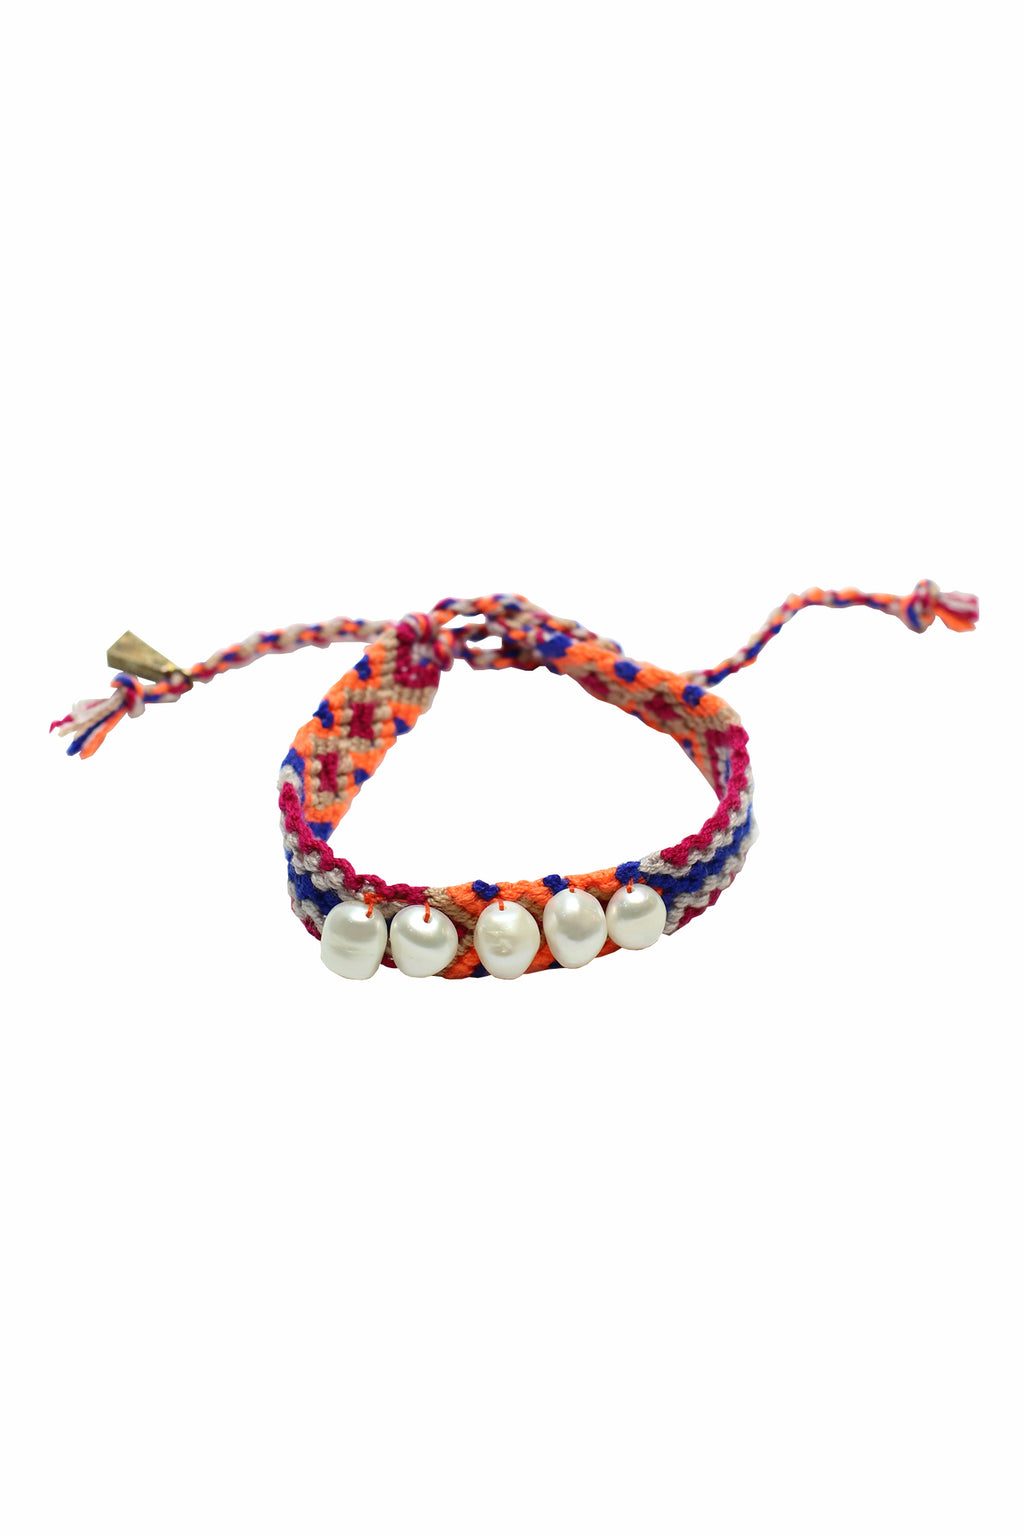 Lucy Folk - Multi color cotton pearlier friendship band with gold lock plated bracelet